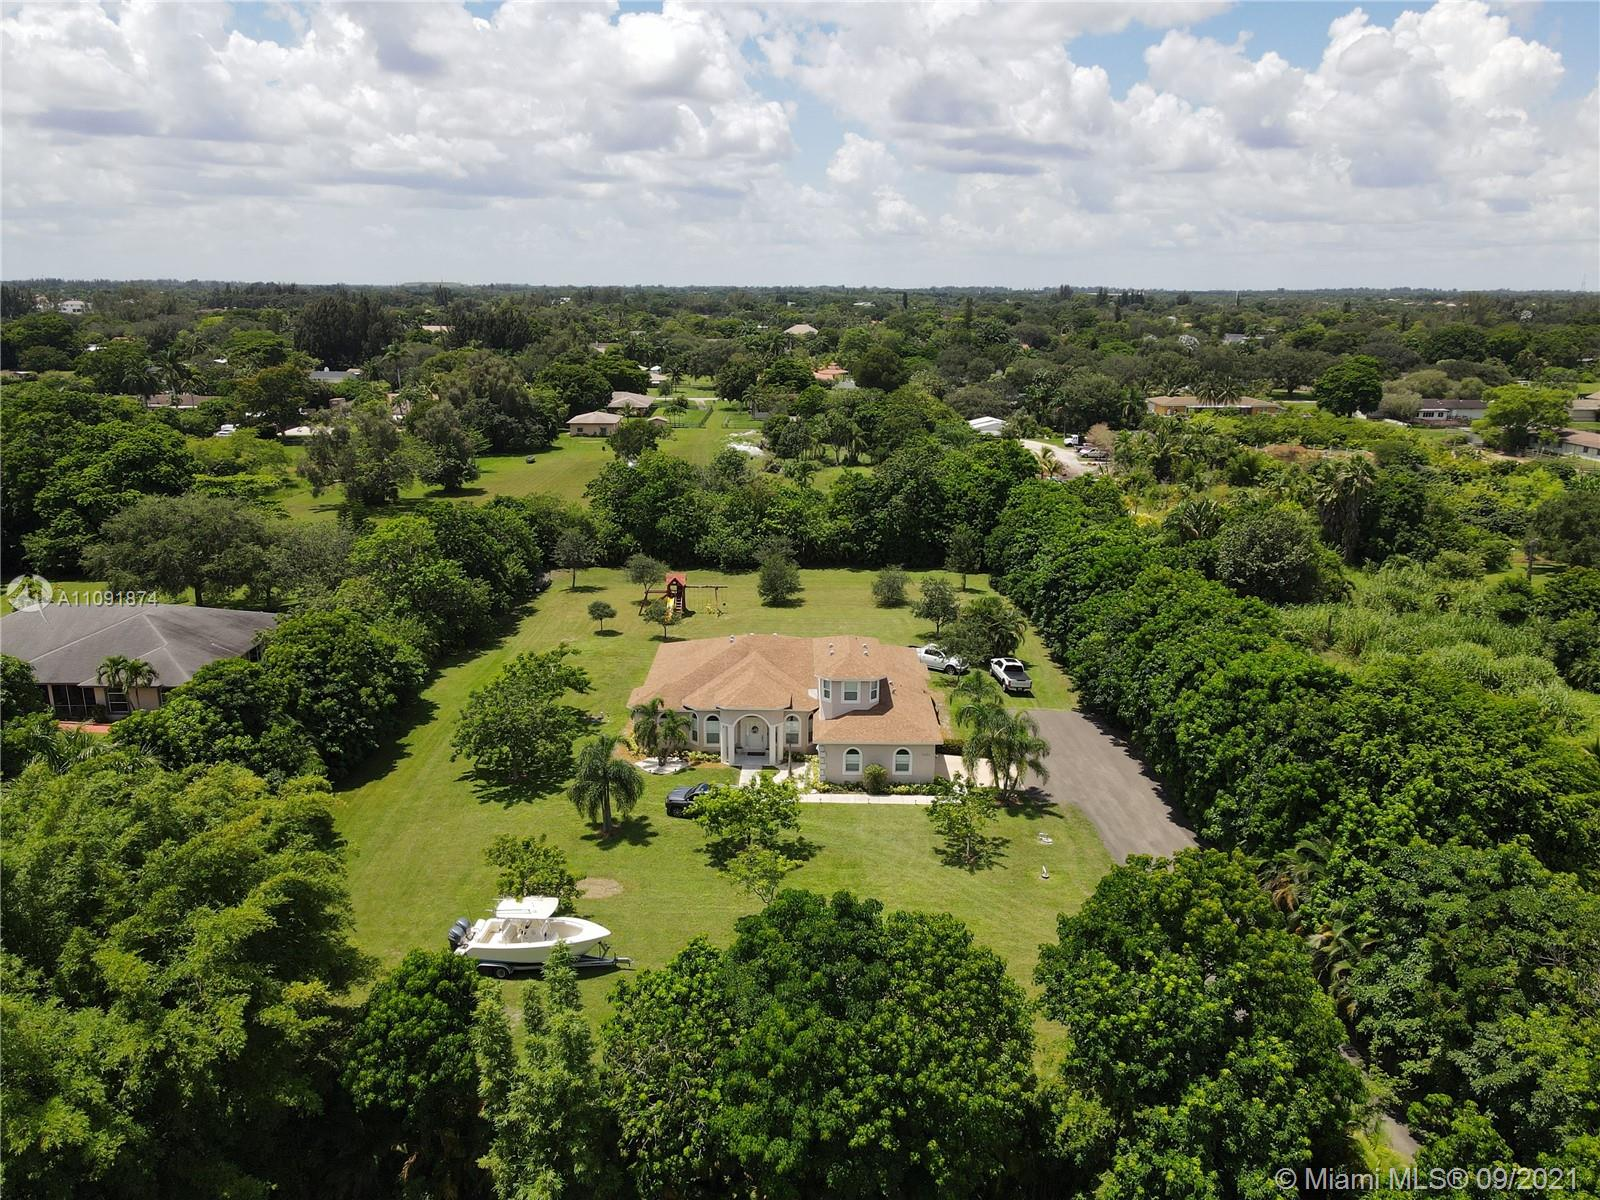 5033 SW 160th Ave Southwest Ranches, FL  33331